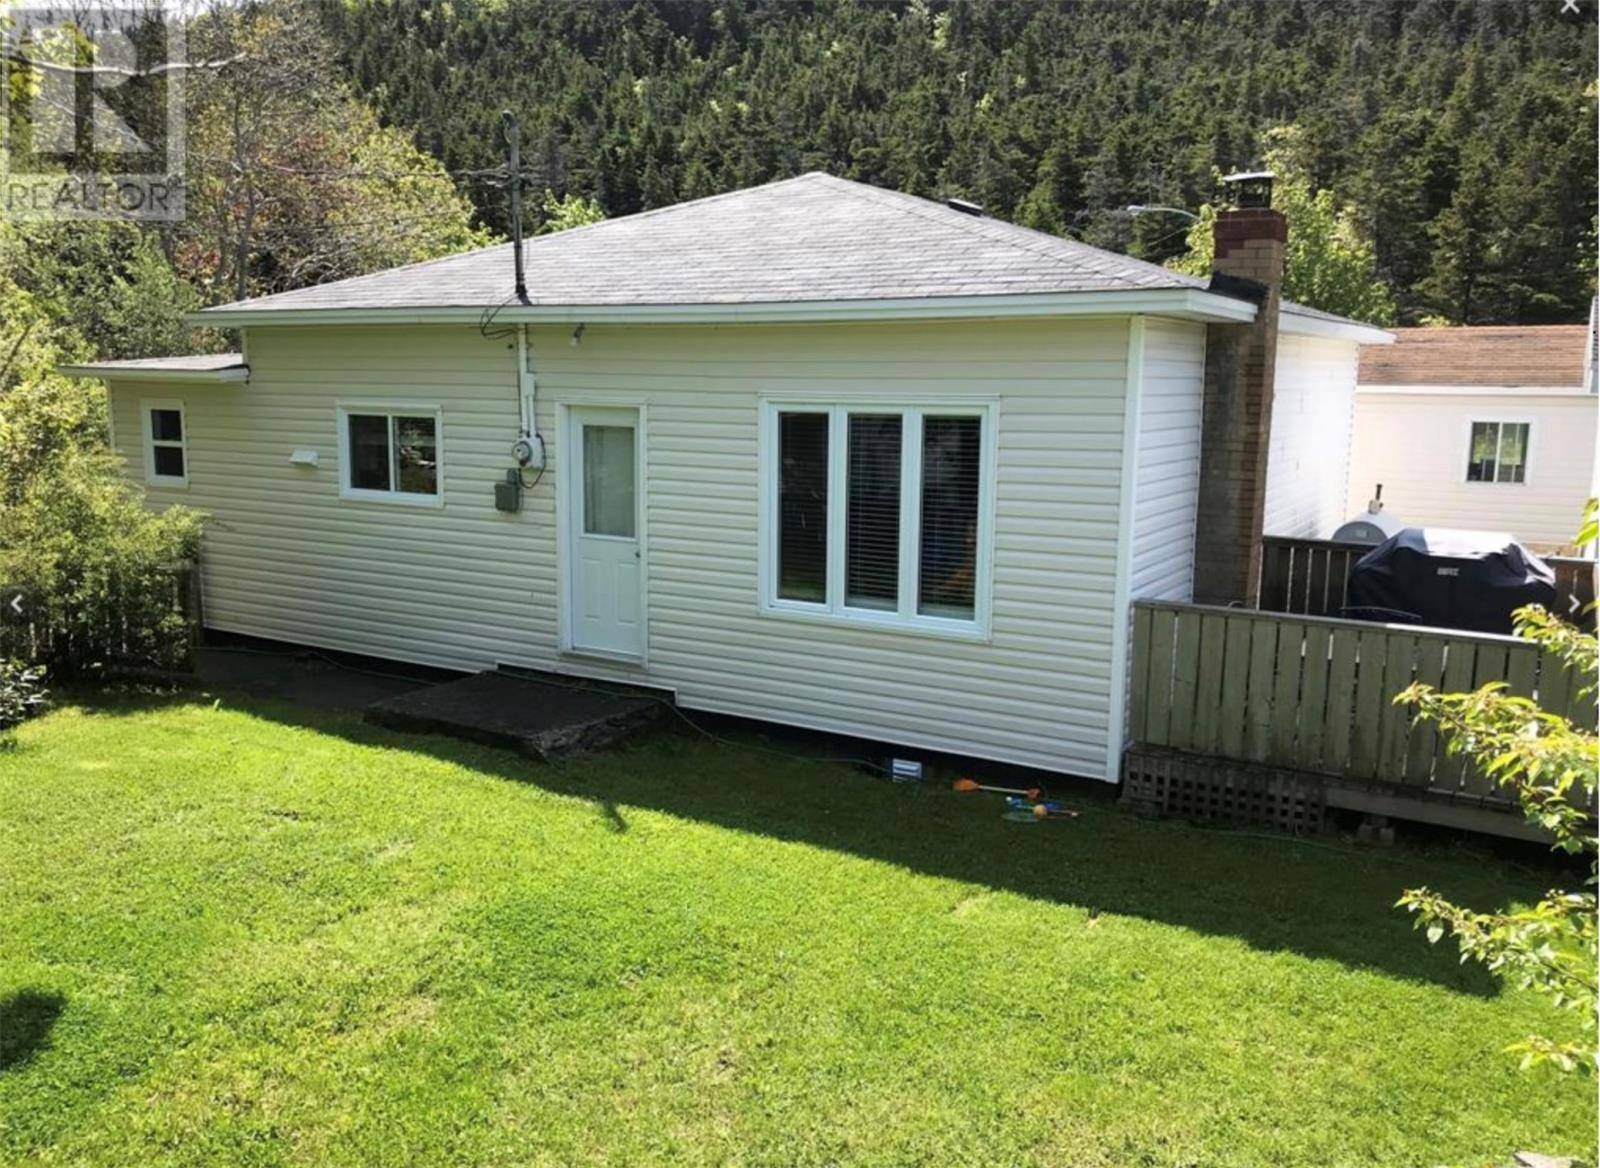 House for sale at 1851 Portugal Cove Rd Portugal Cove Newfoundland - MLS: 1209180